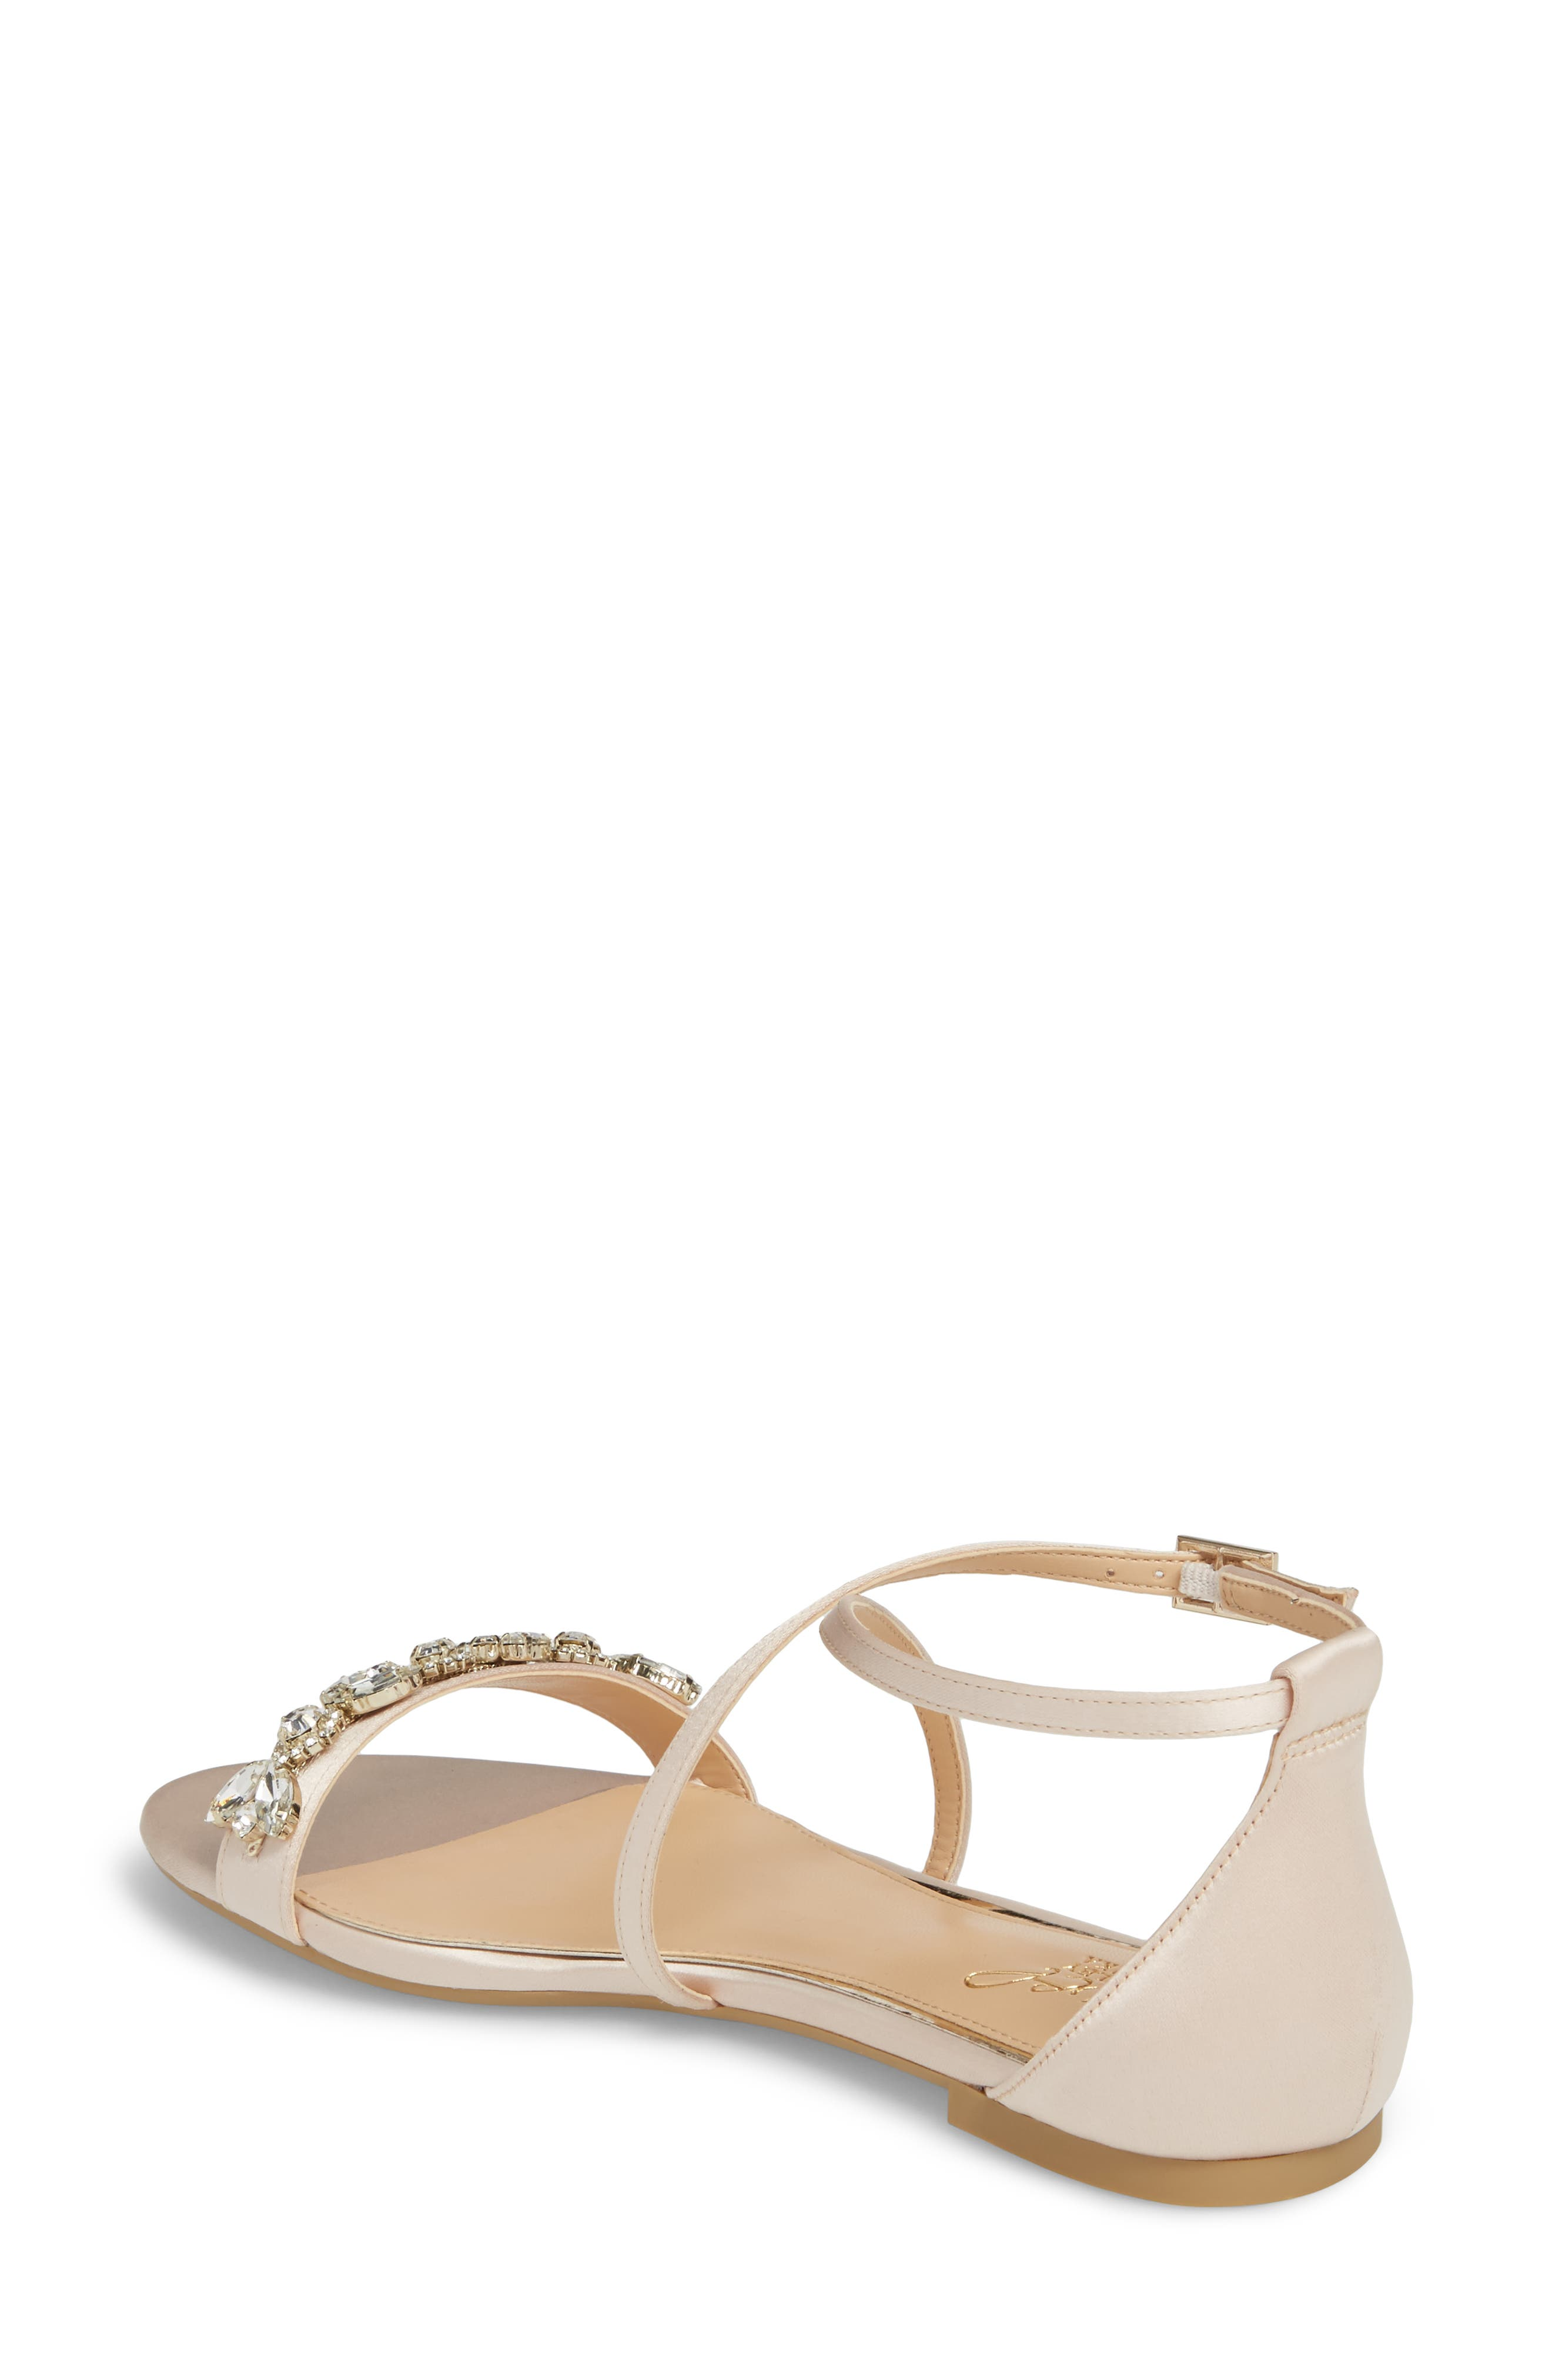 Tessy Embellished Sandal,                             Alternate thumbnail 2, color,                             CHAMPAGNE SATIN